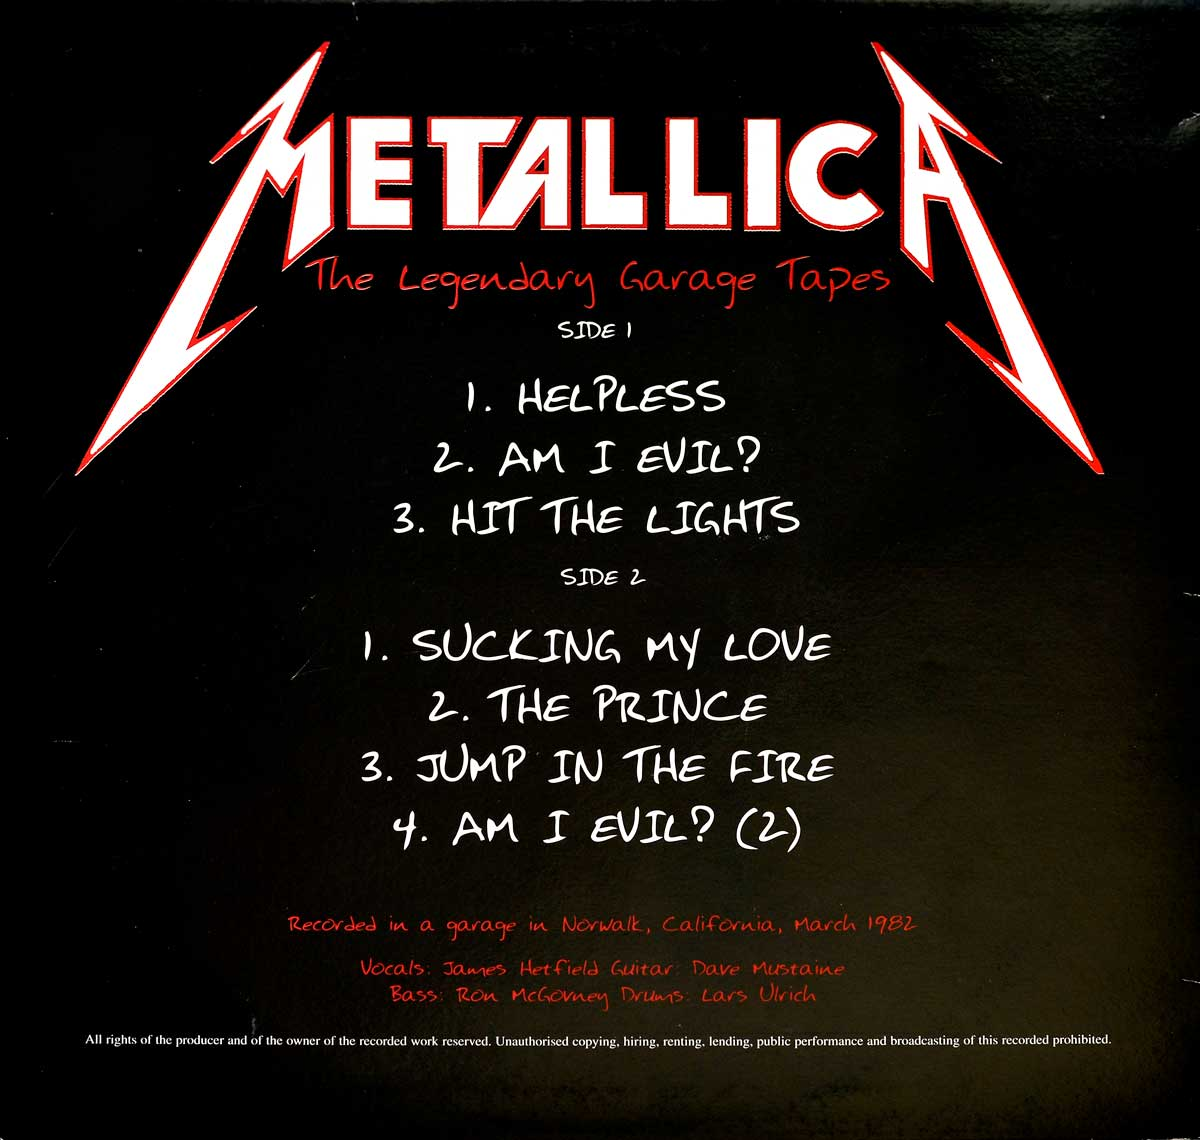 Photo of album back cover METALLICA - The legendary Garage Tapes ( Unofficial Record )